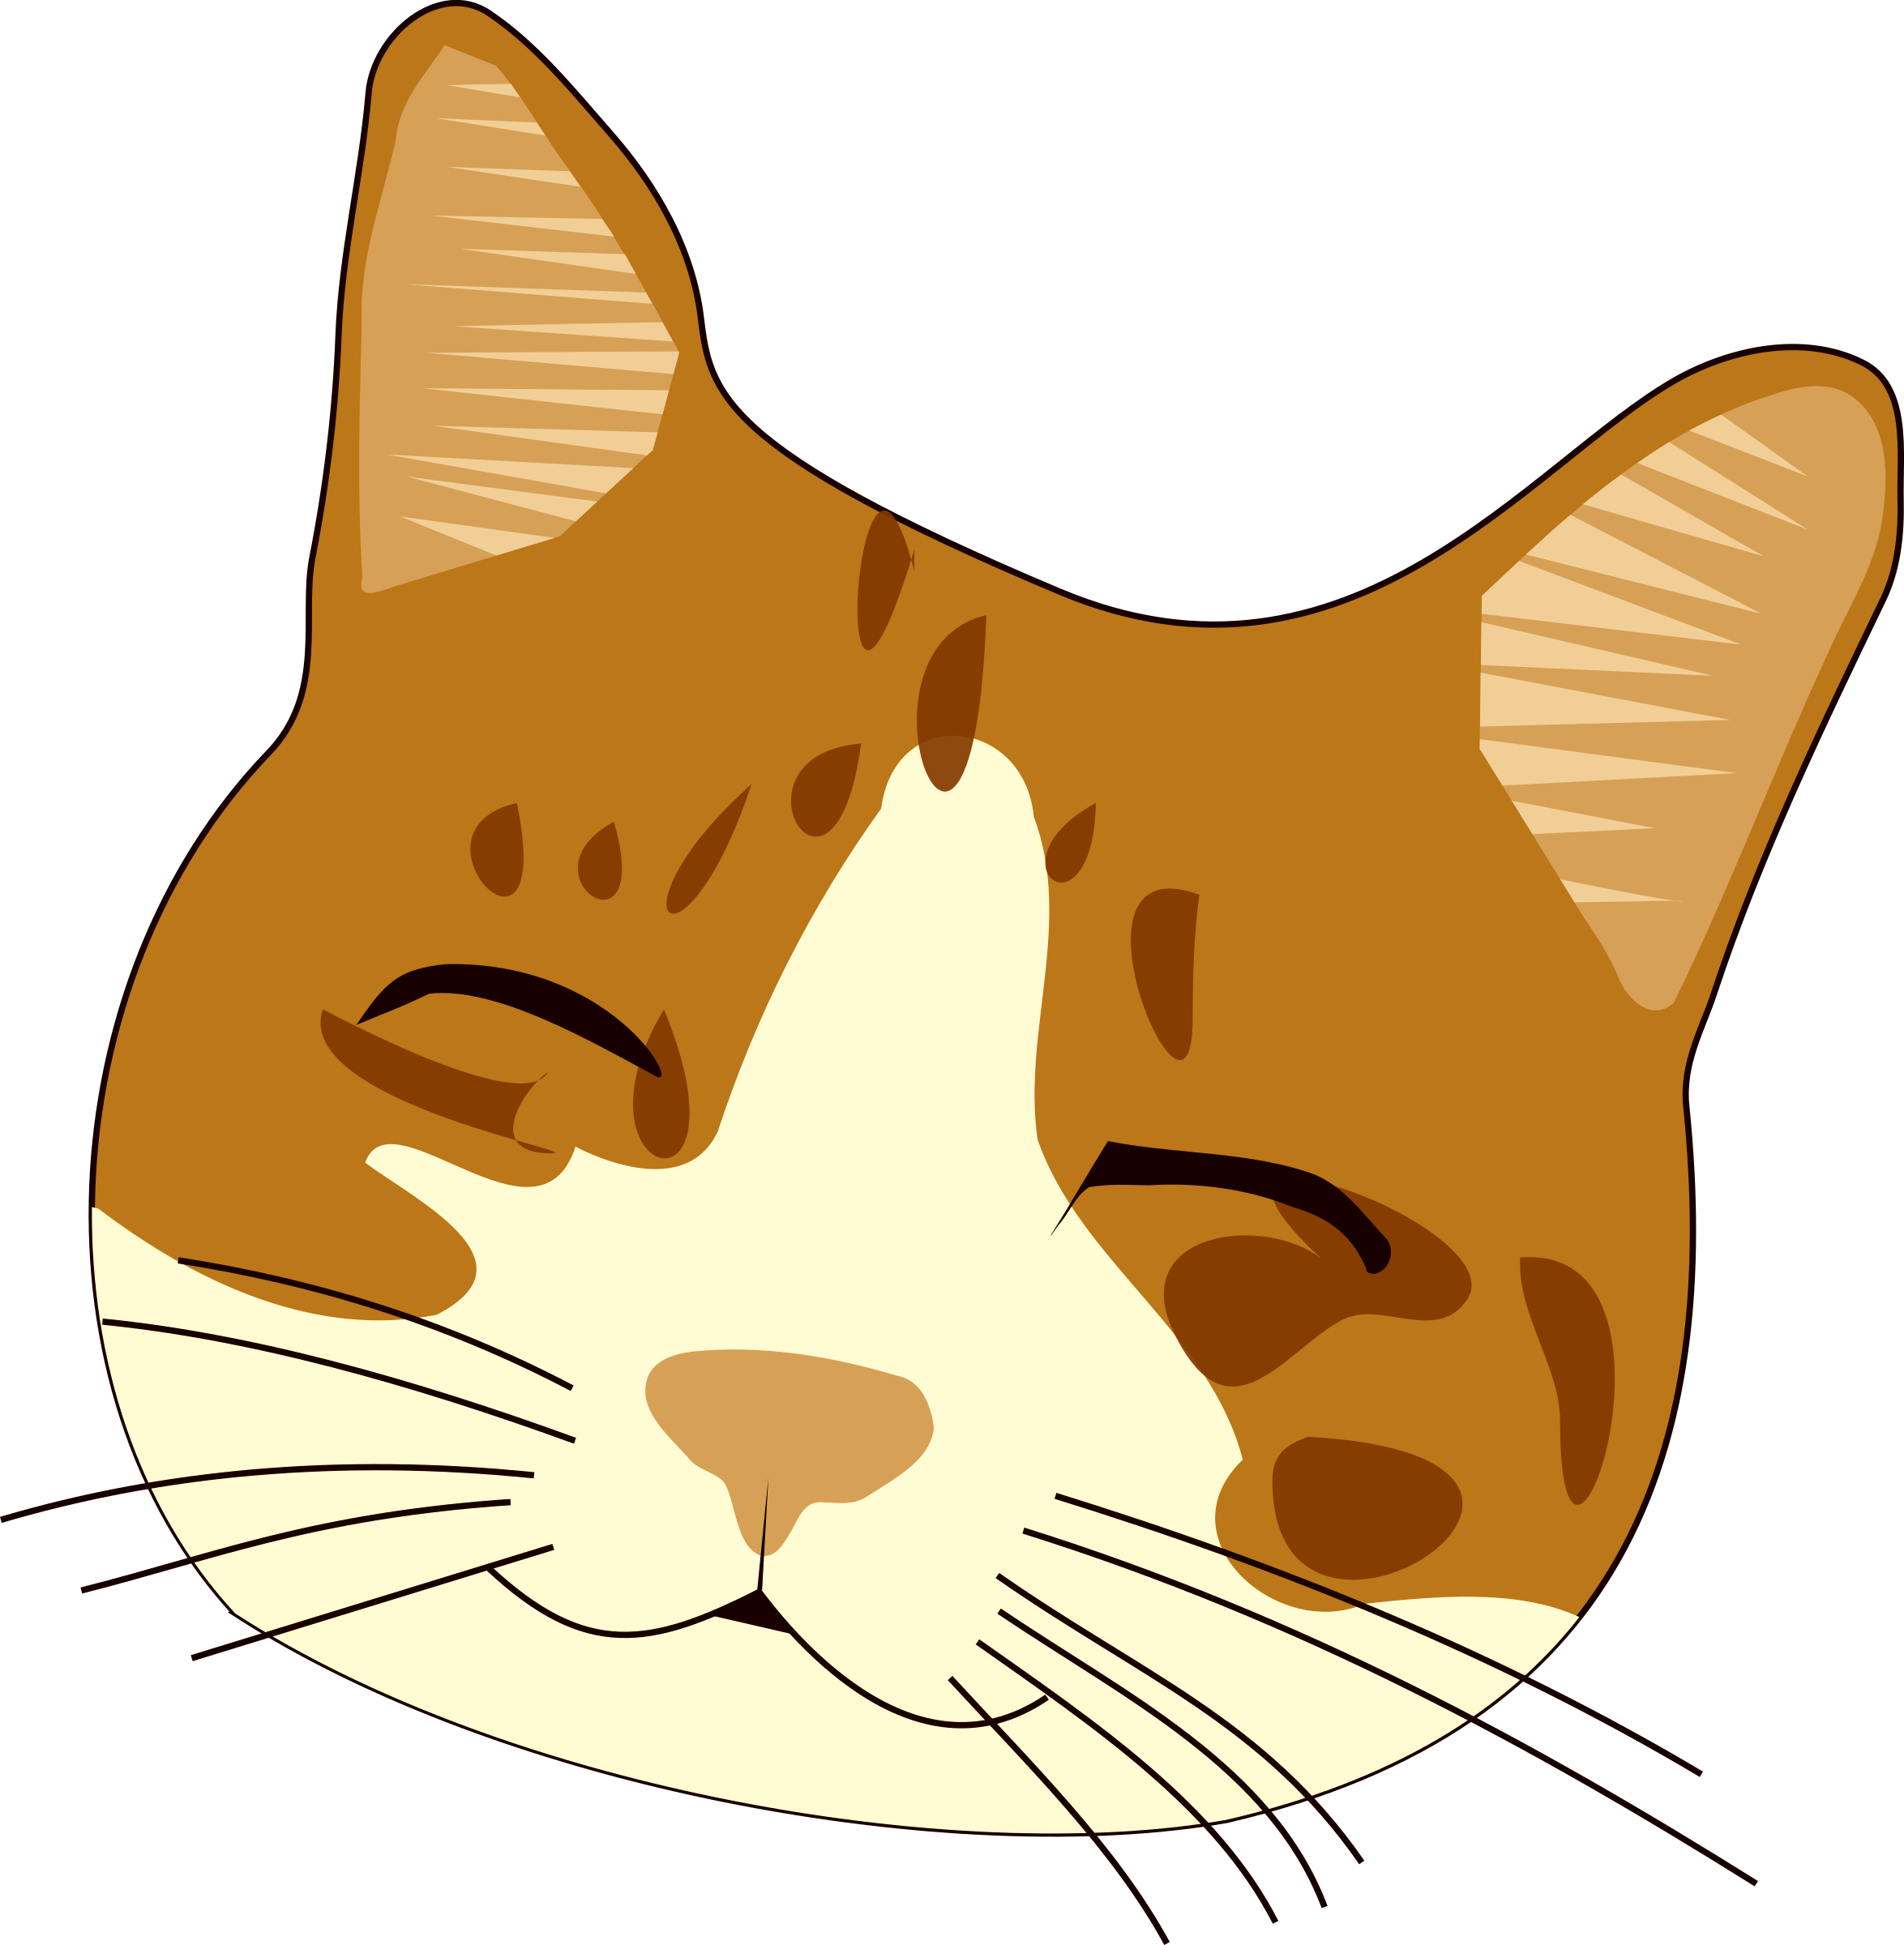 Cat eyes and whiskers clipart svg library Cat / Image ID: 426 | PNG Photo with Transparent Background svg library